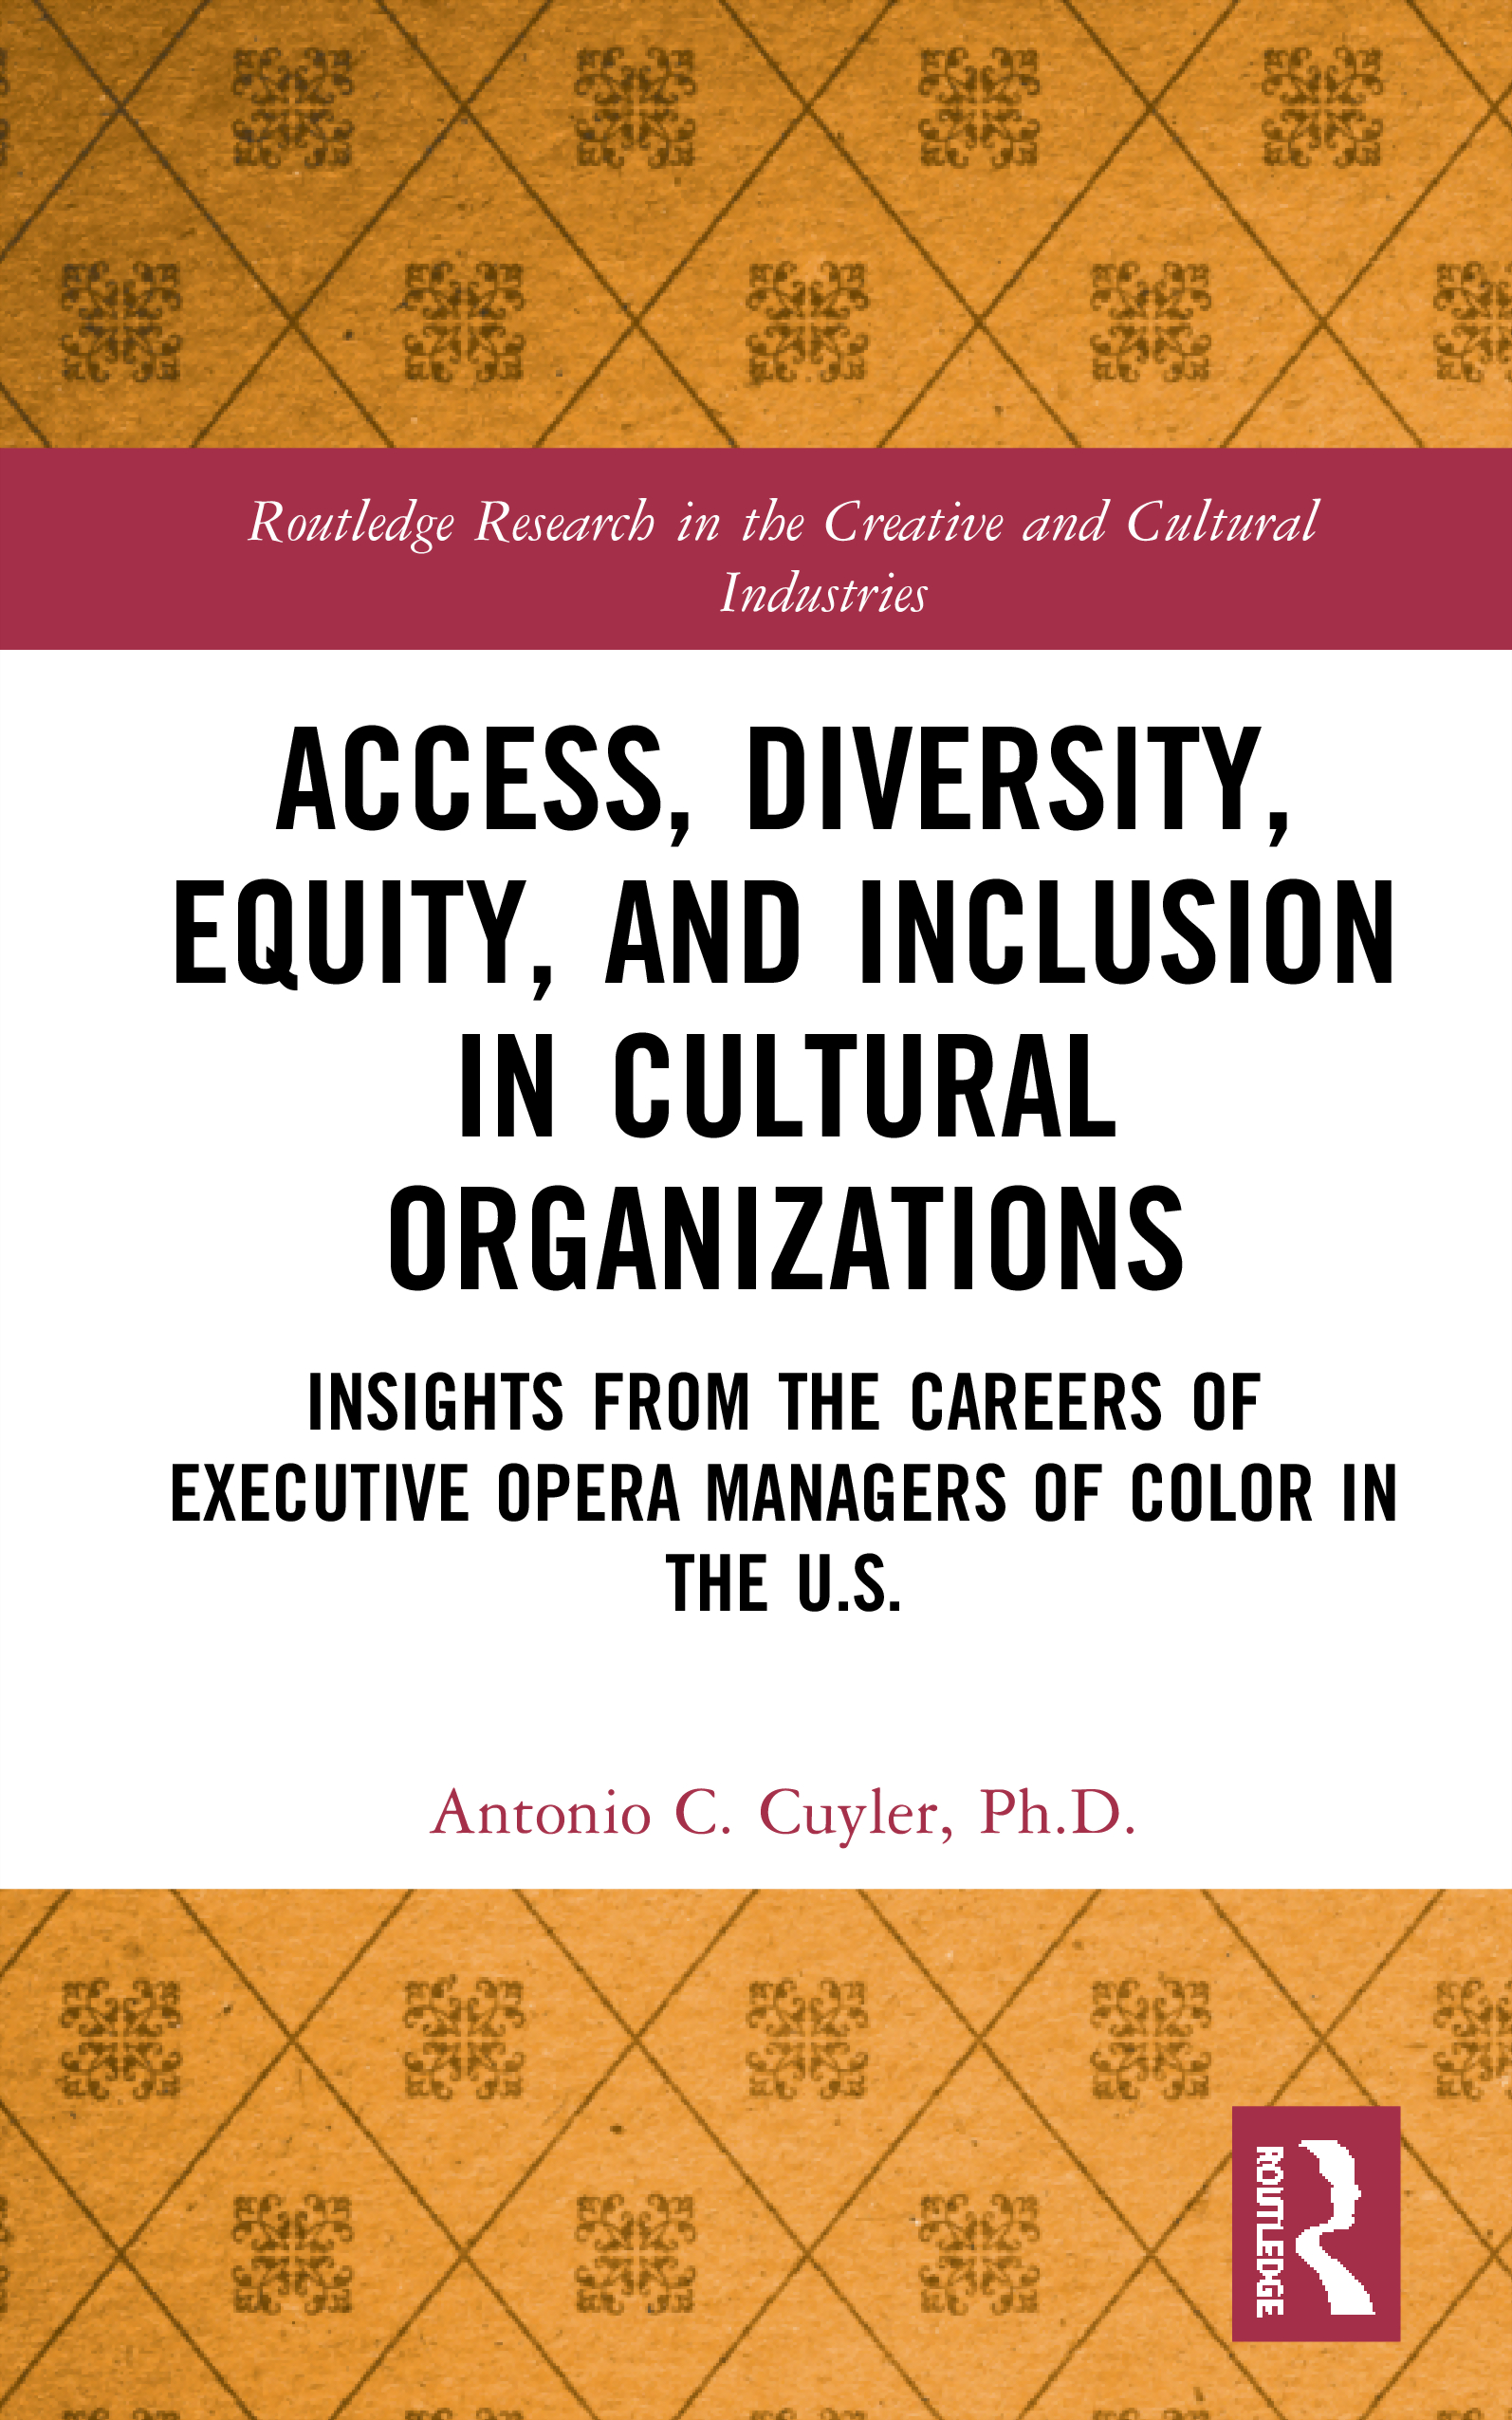 Access, Diversity, Equity, and Inclusion in Cultural Organizations